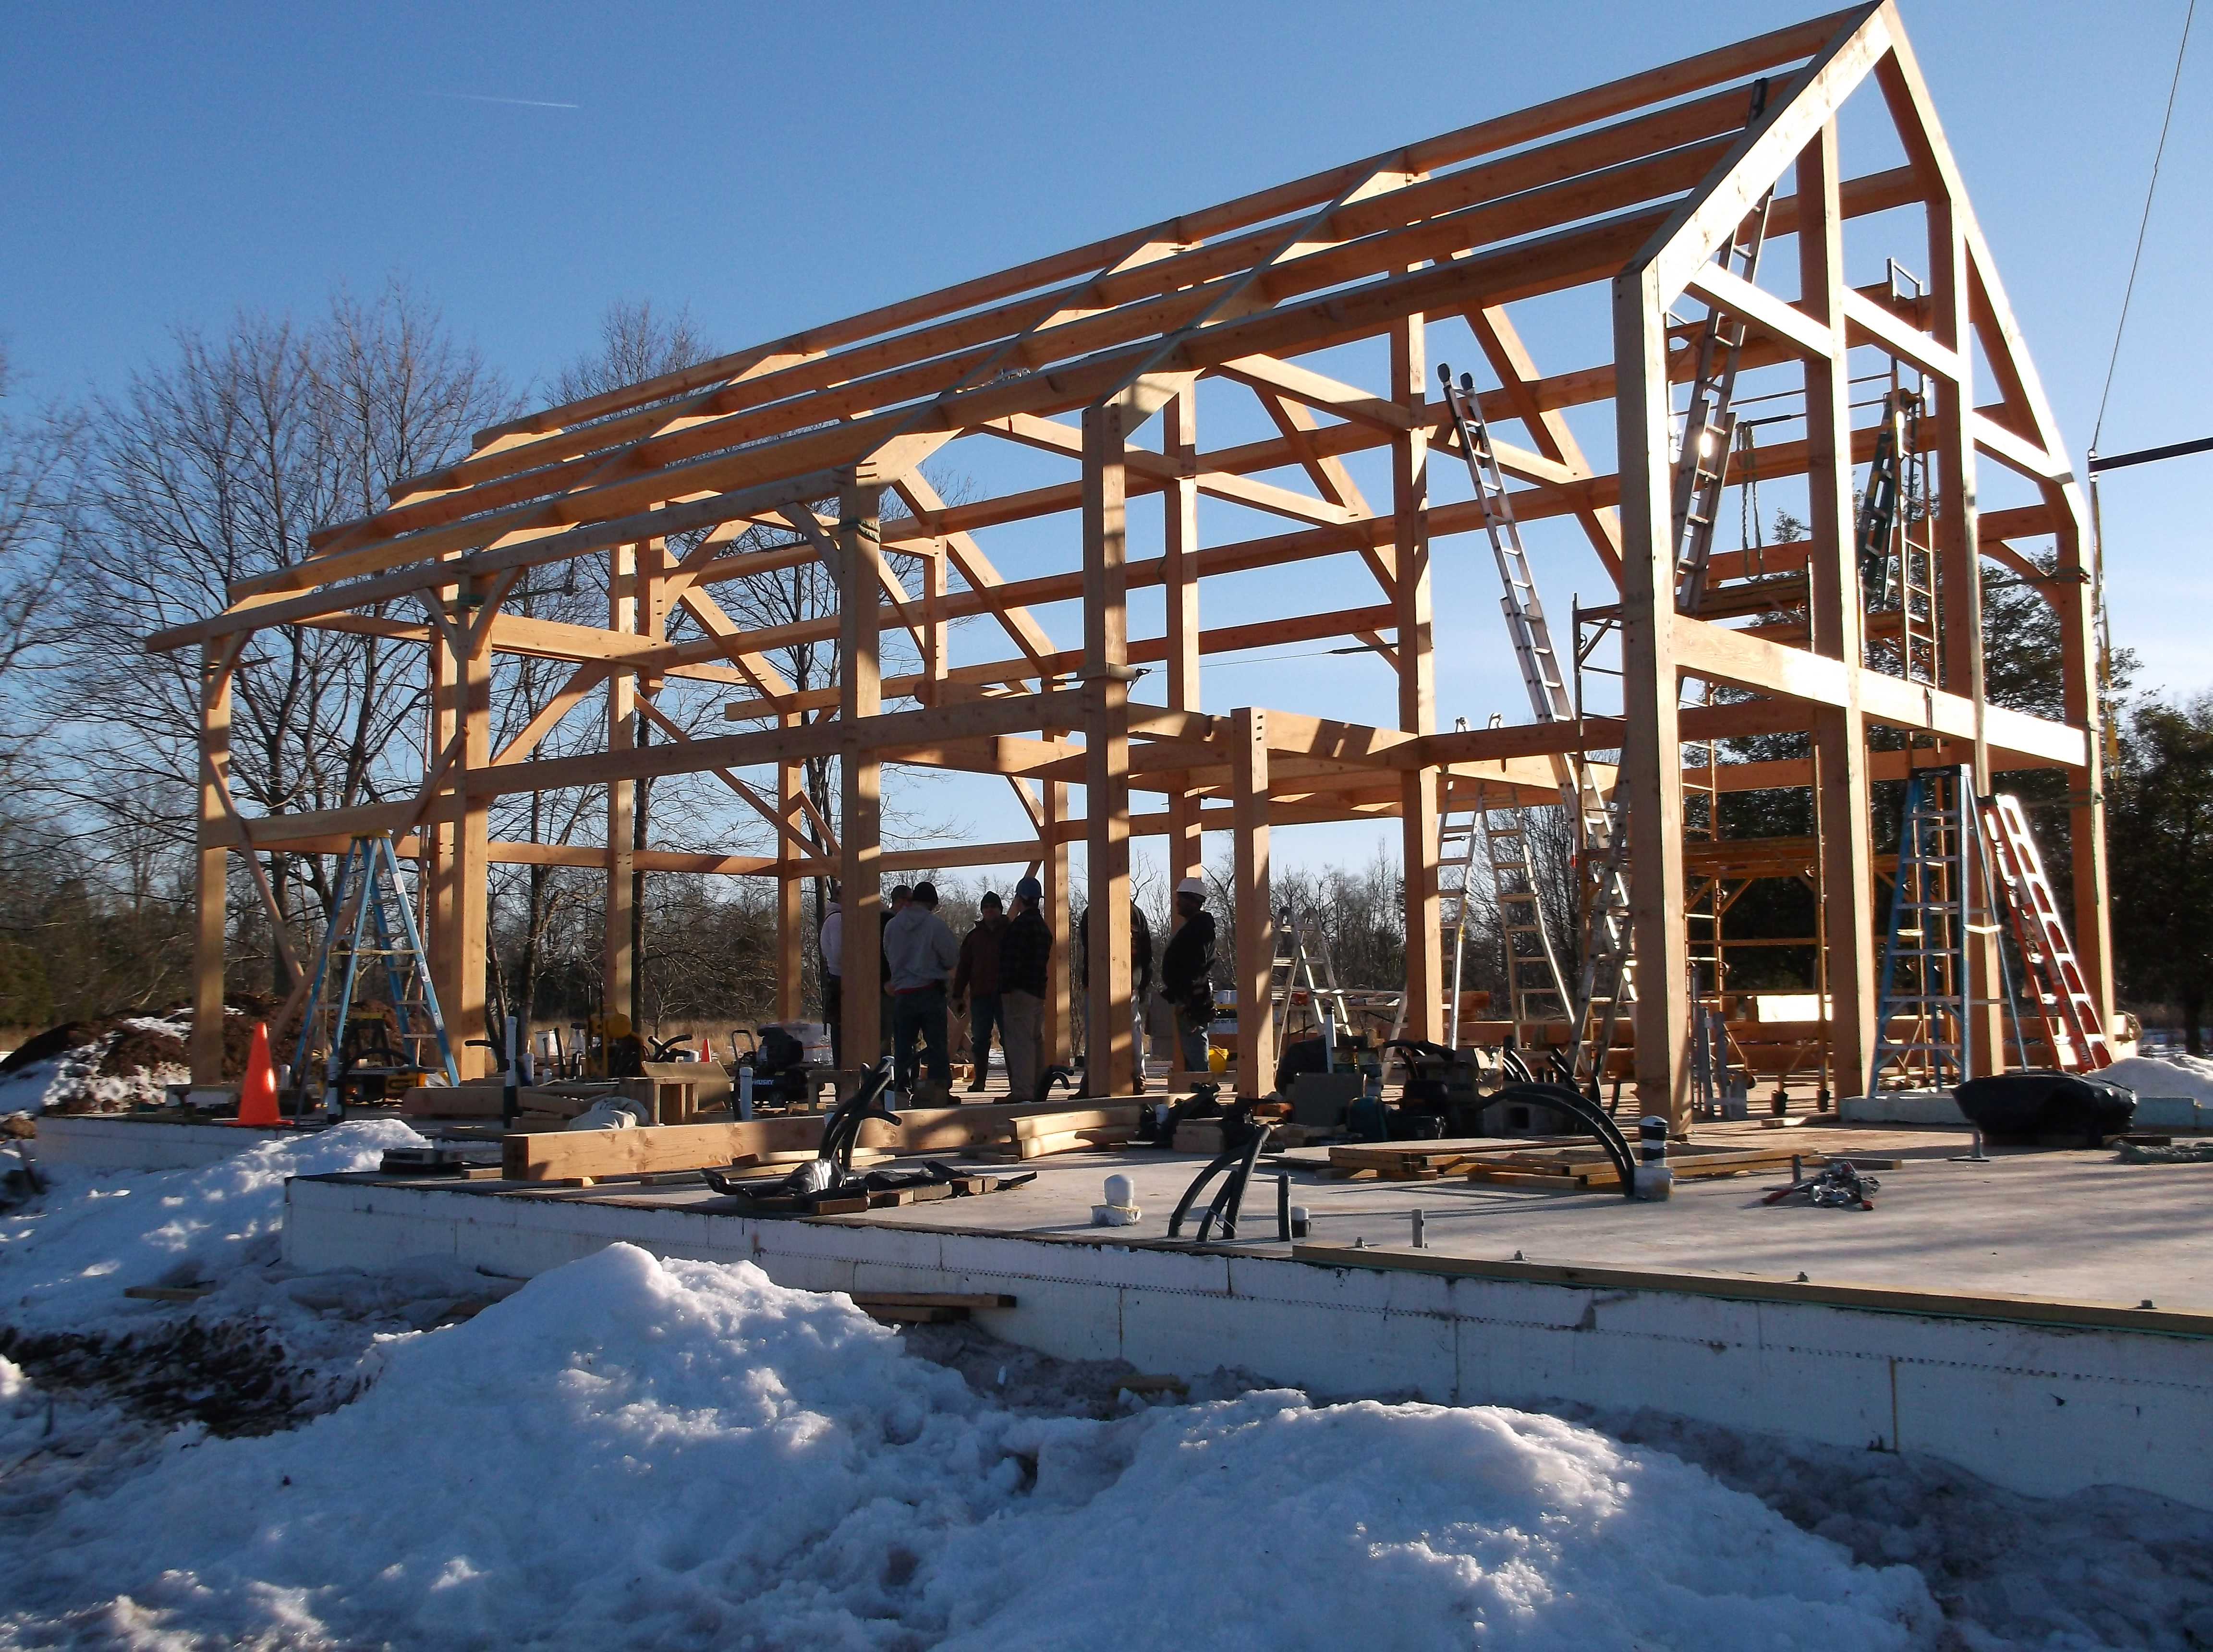 New hampshire and maine home builder 11 rcc building for Home builders in new hampshire